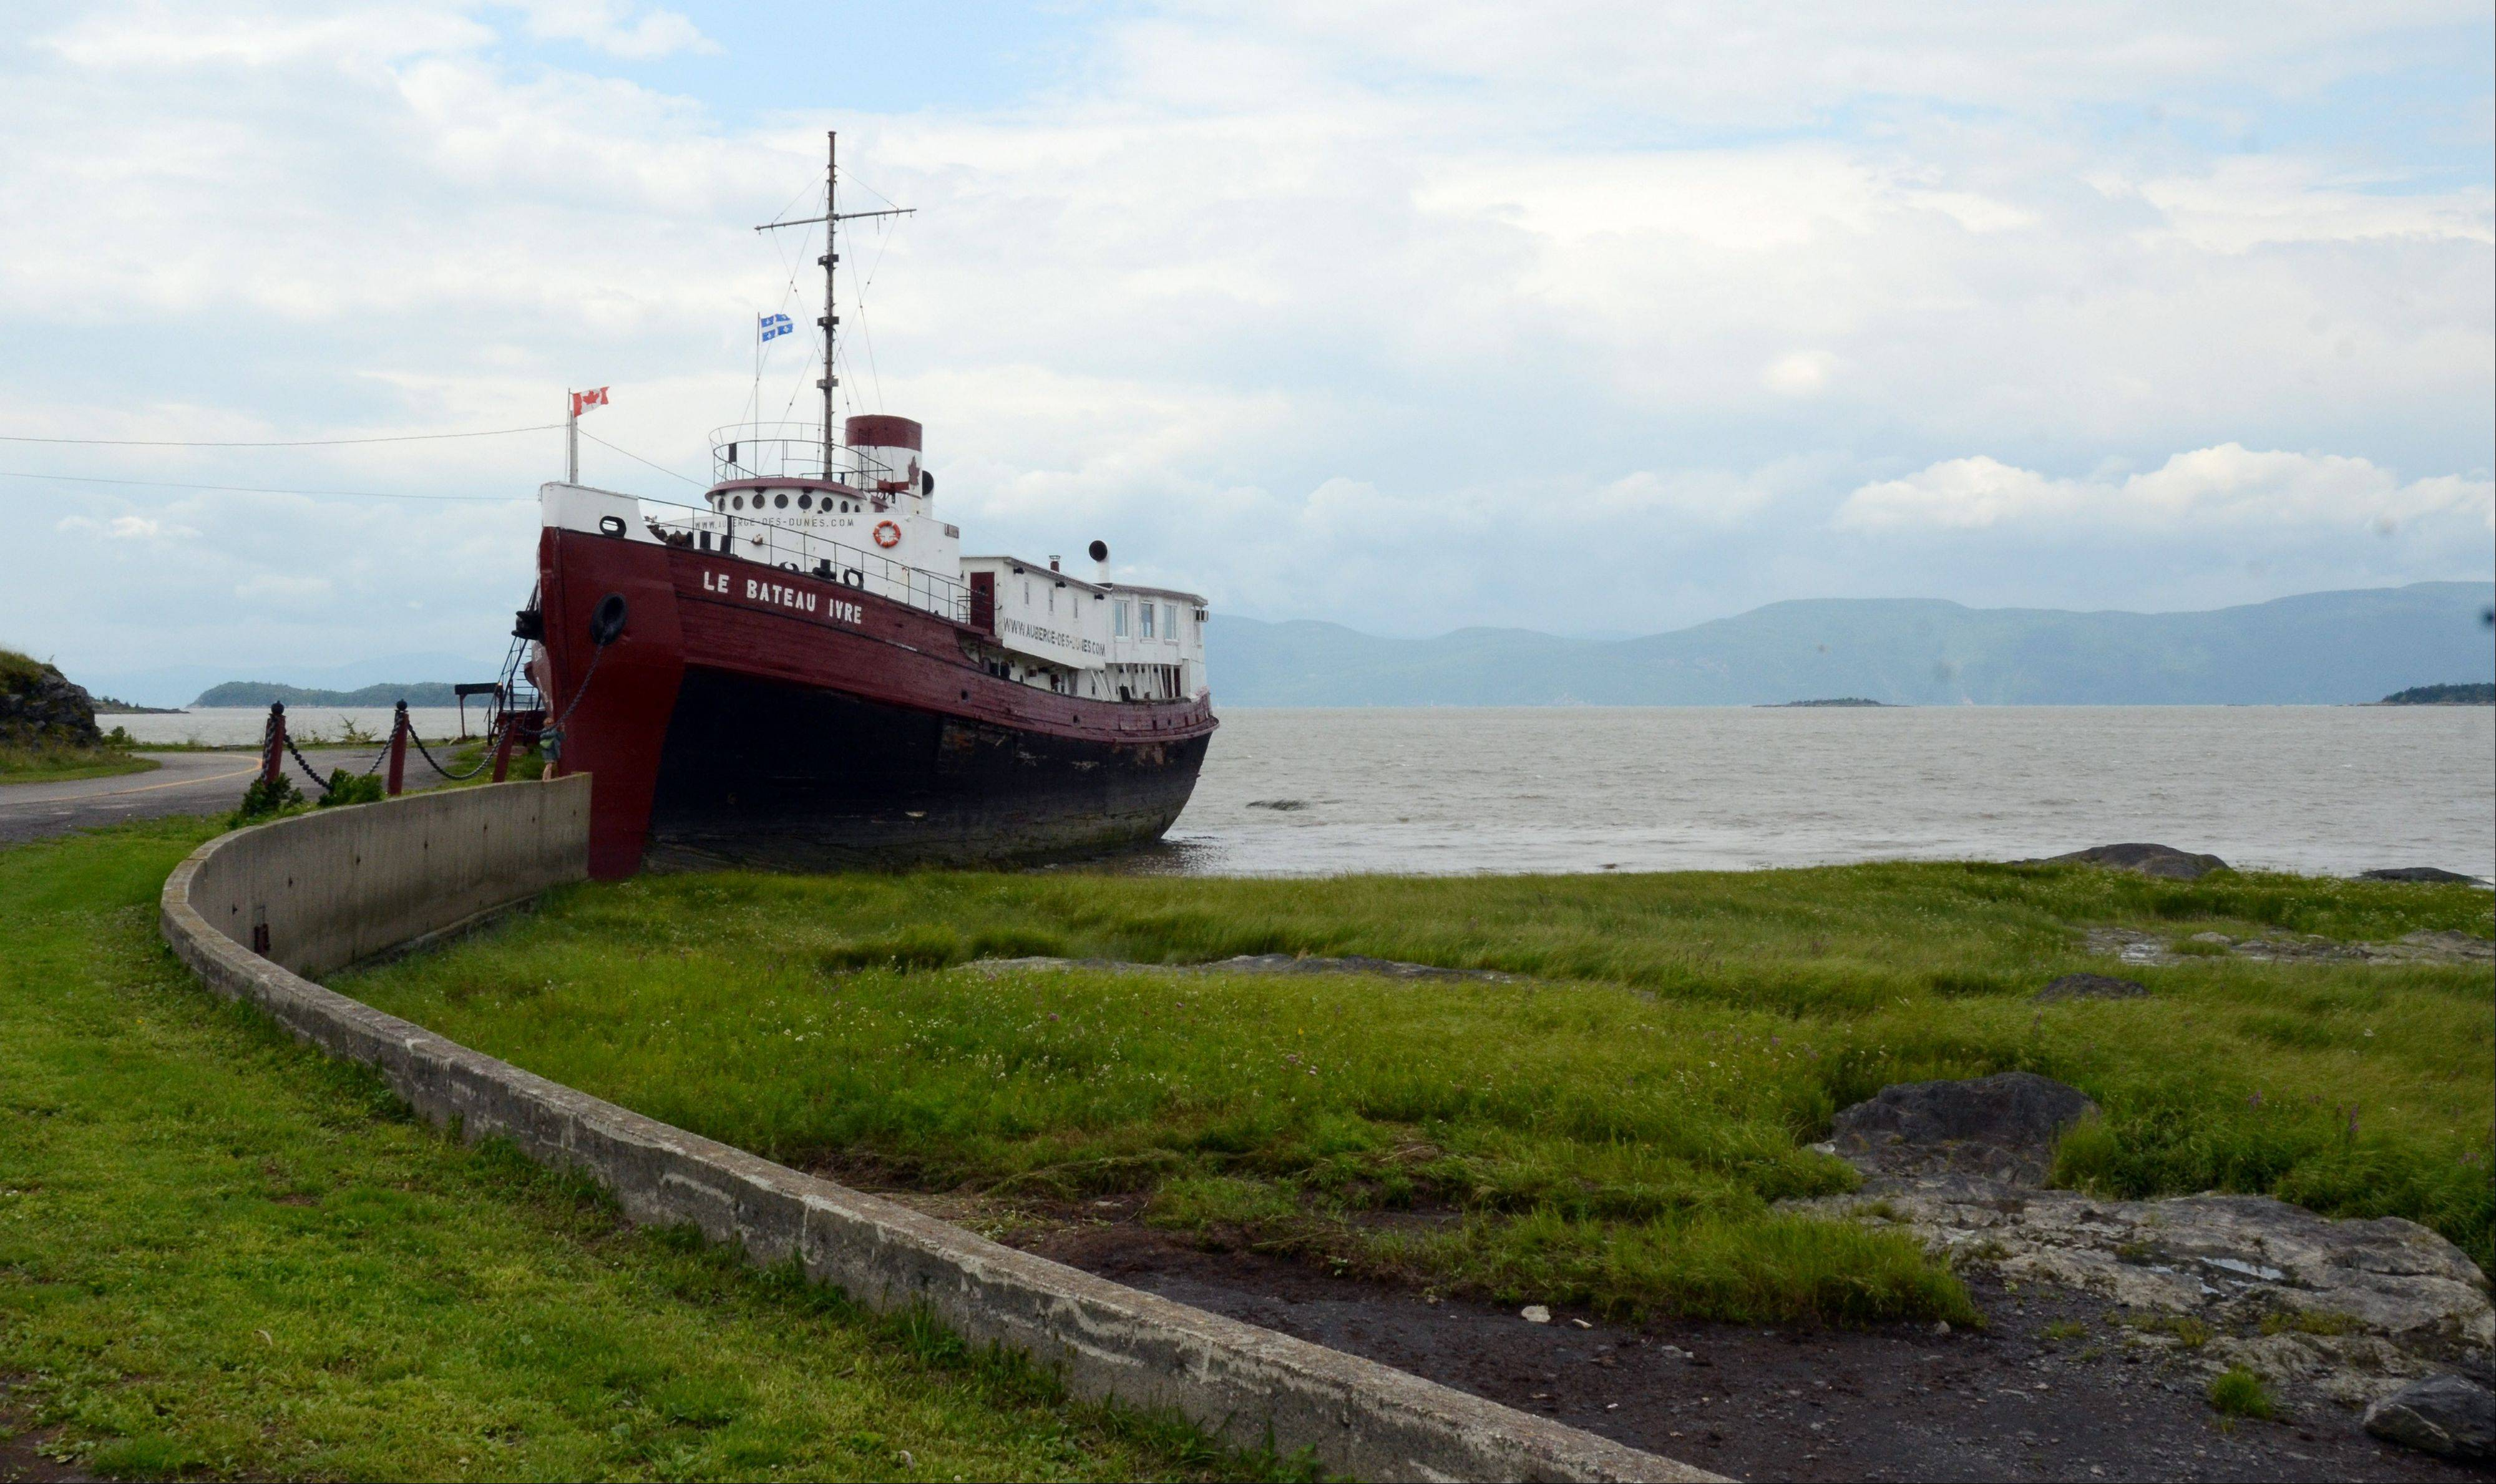 An old New York tugboat converted to a restaurant and social center floats along Ile-aux-Grues in the St. Lawrence River on the outskirts of Quebec City. The island offers quiet roads and stunning river vistas for cyclists and lovers of solitude.